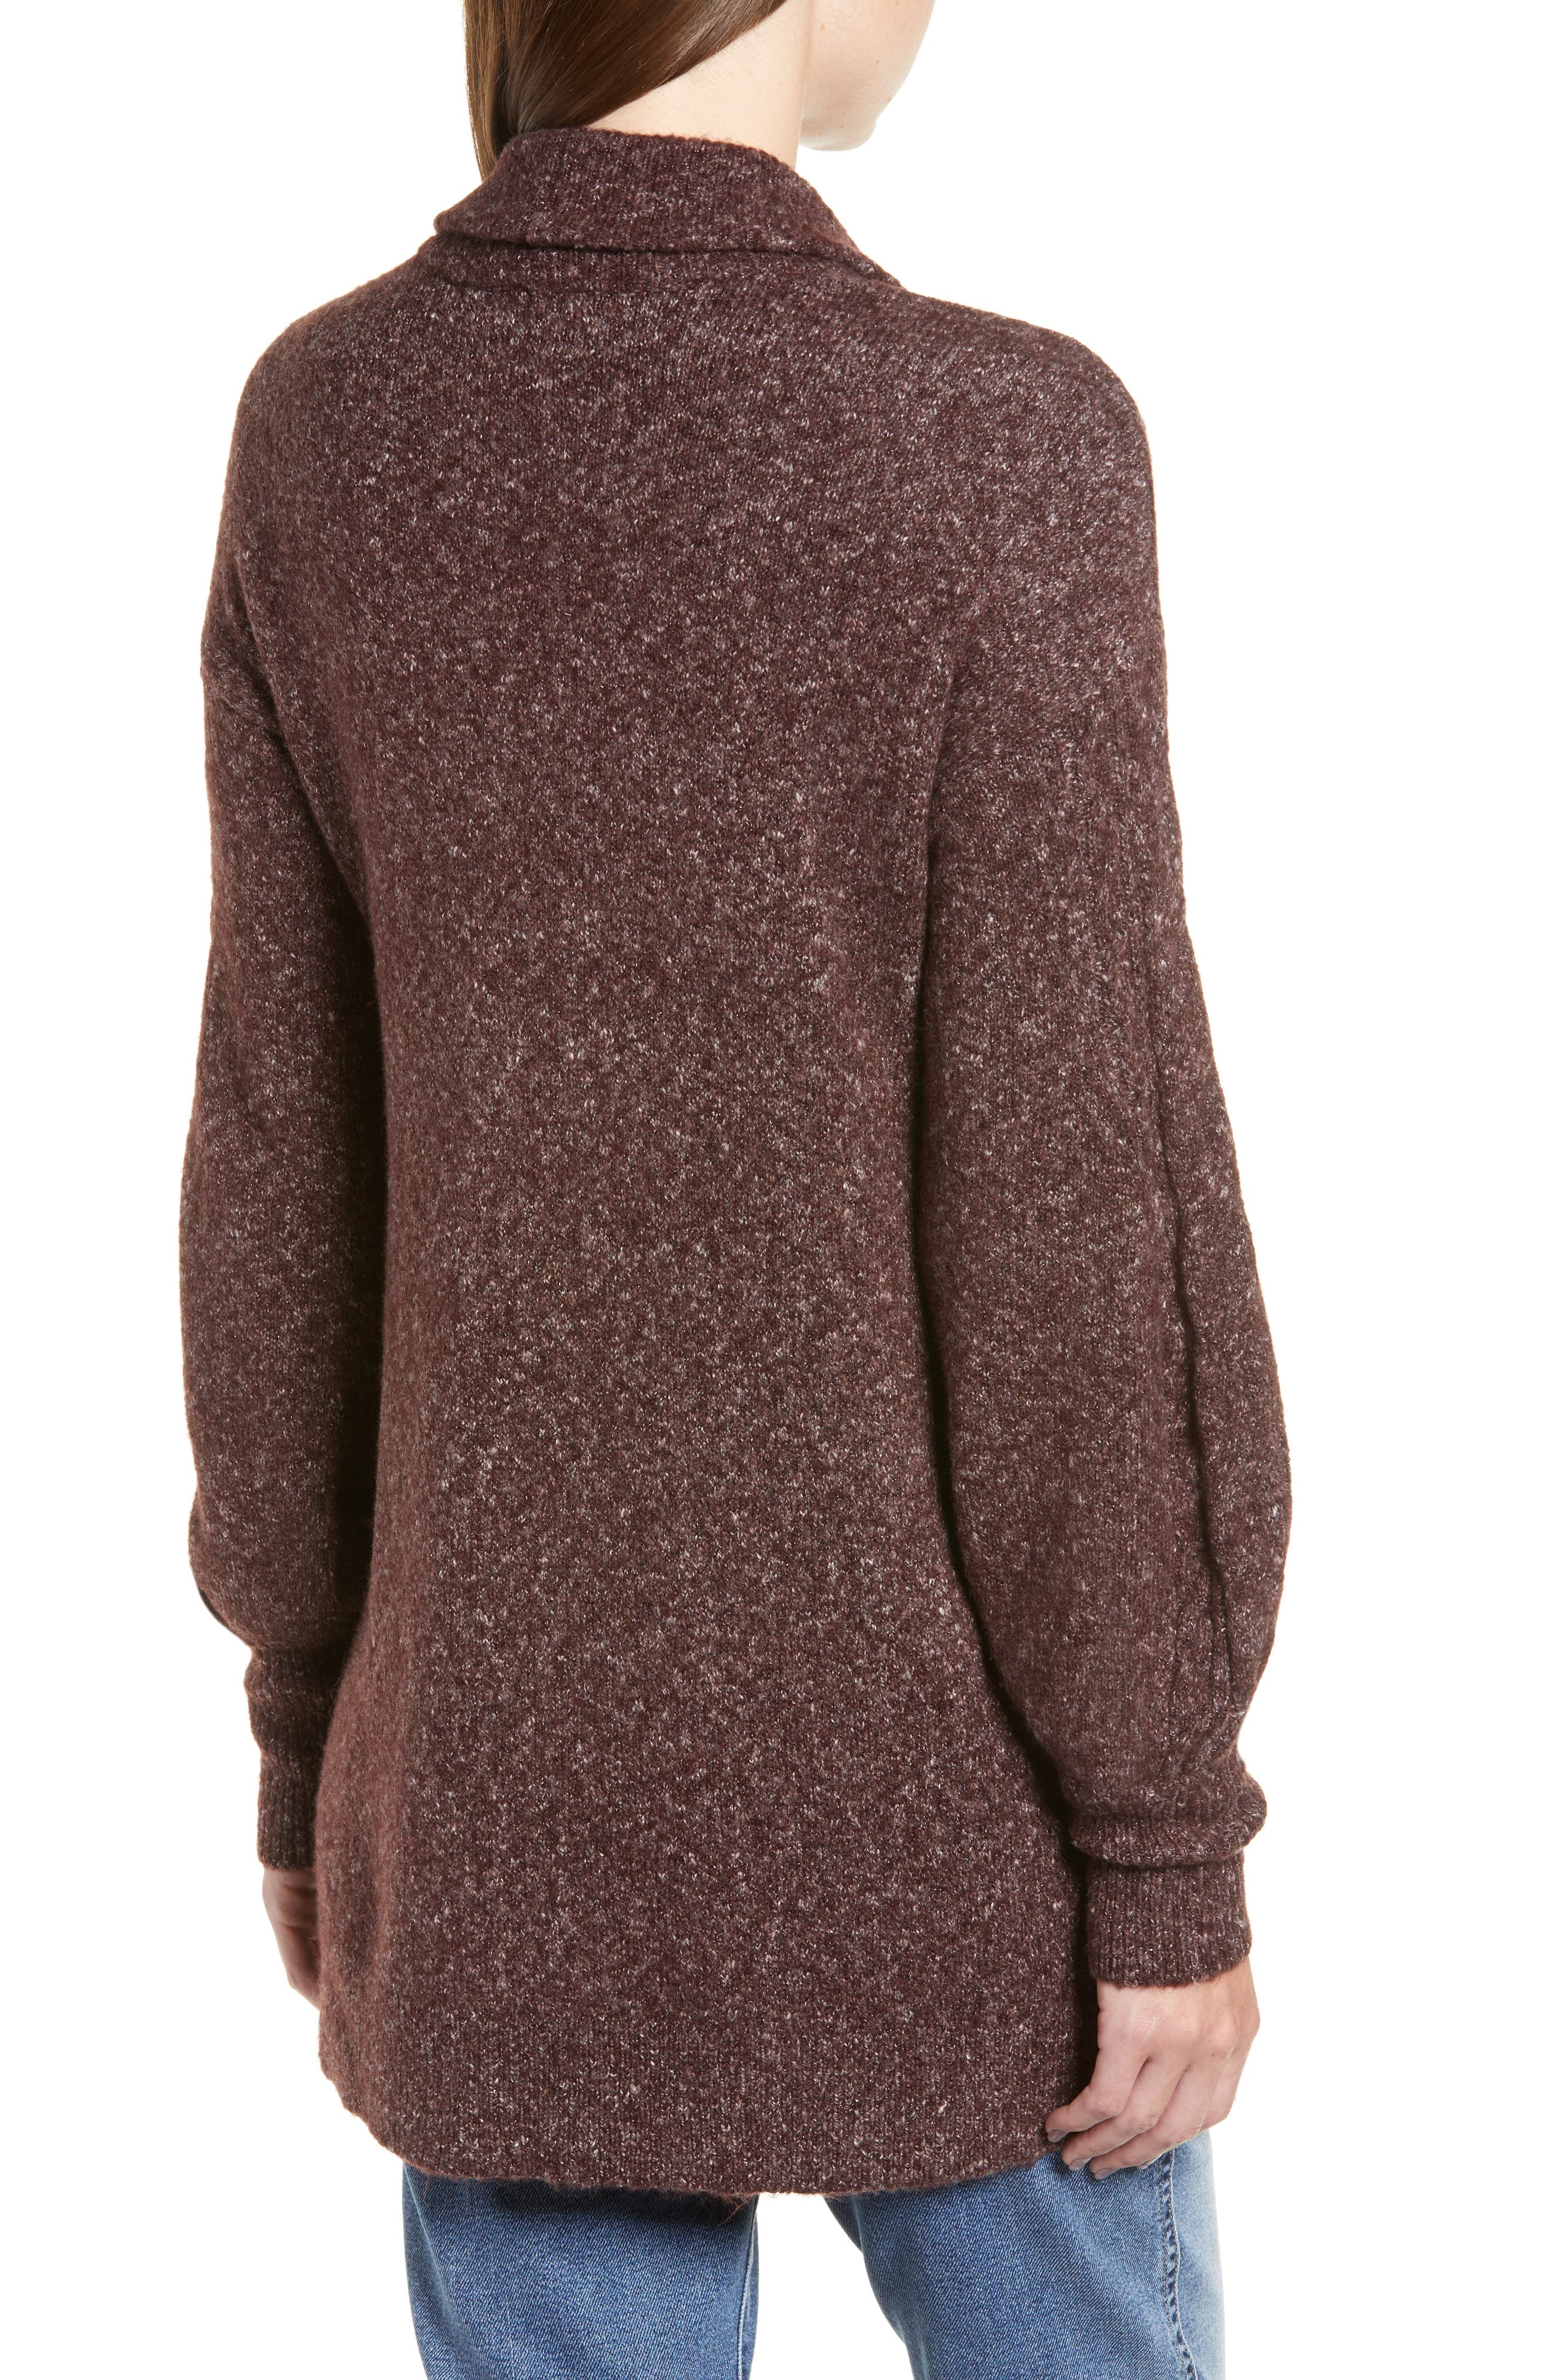 Longline Cardigan,                             Alternate thumbnail 2, color,                             BURGUNDY FUDGE